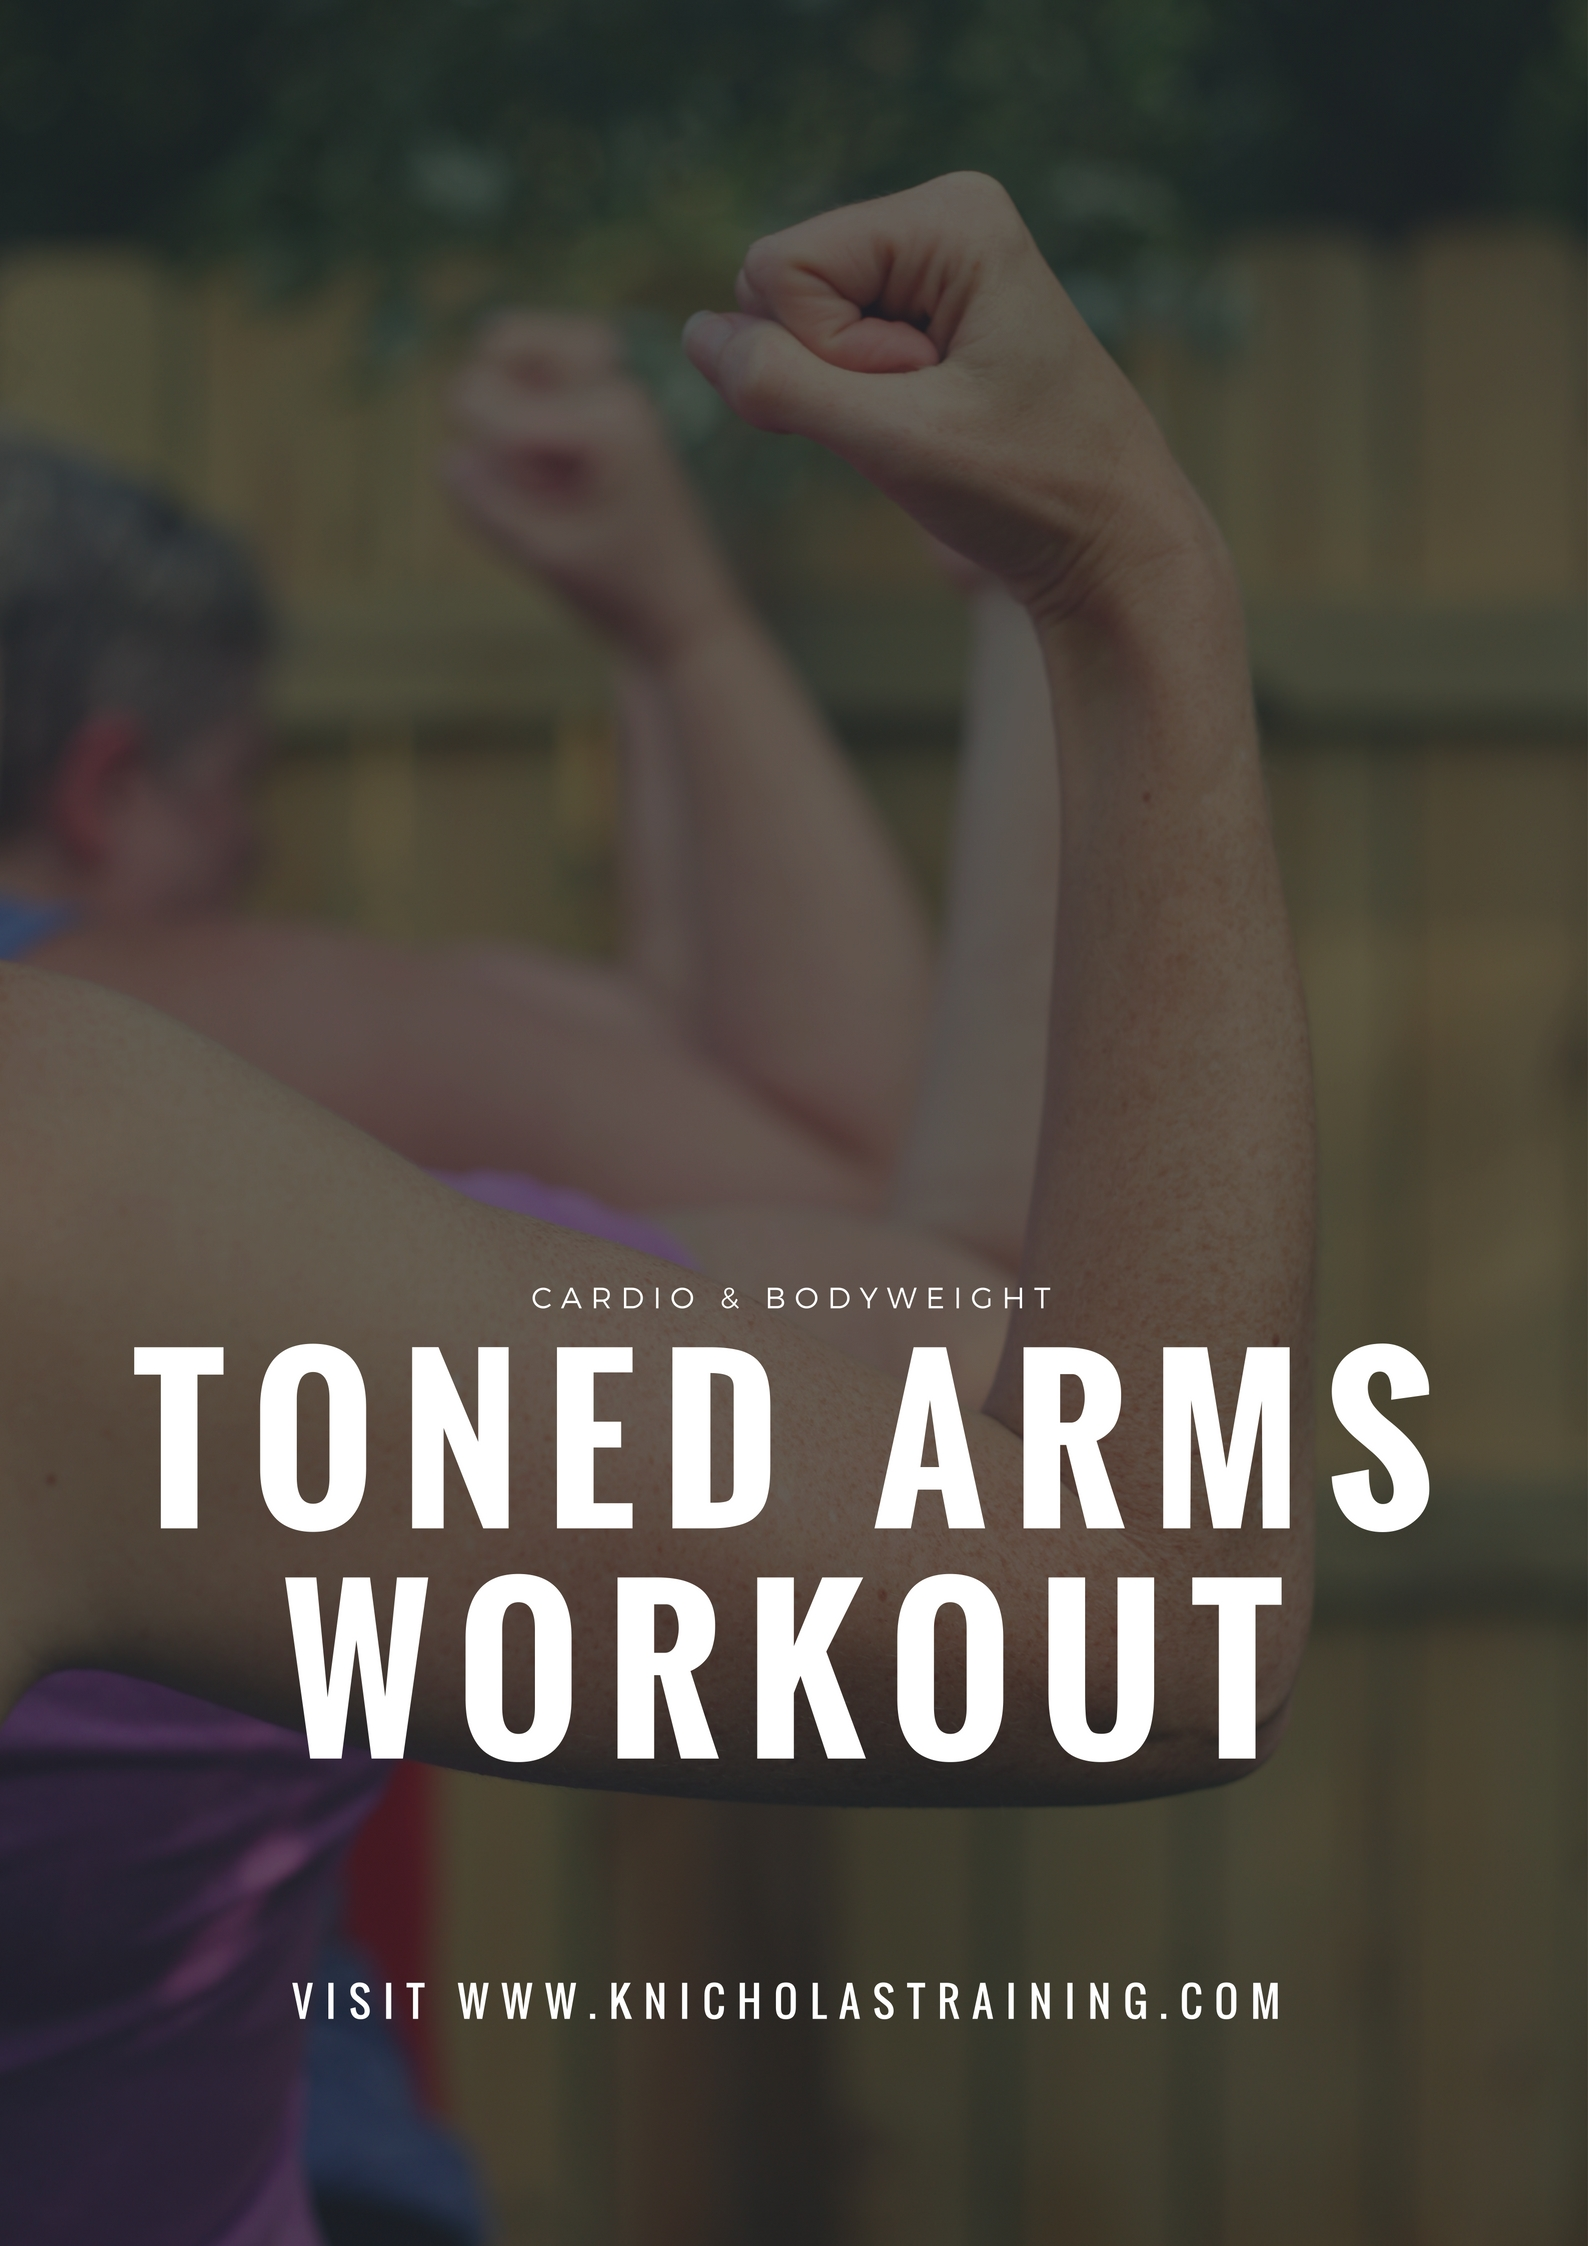 Toned Arms Workout